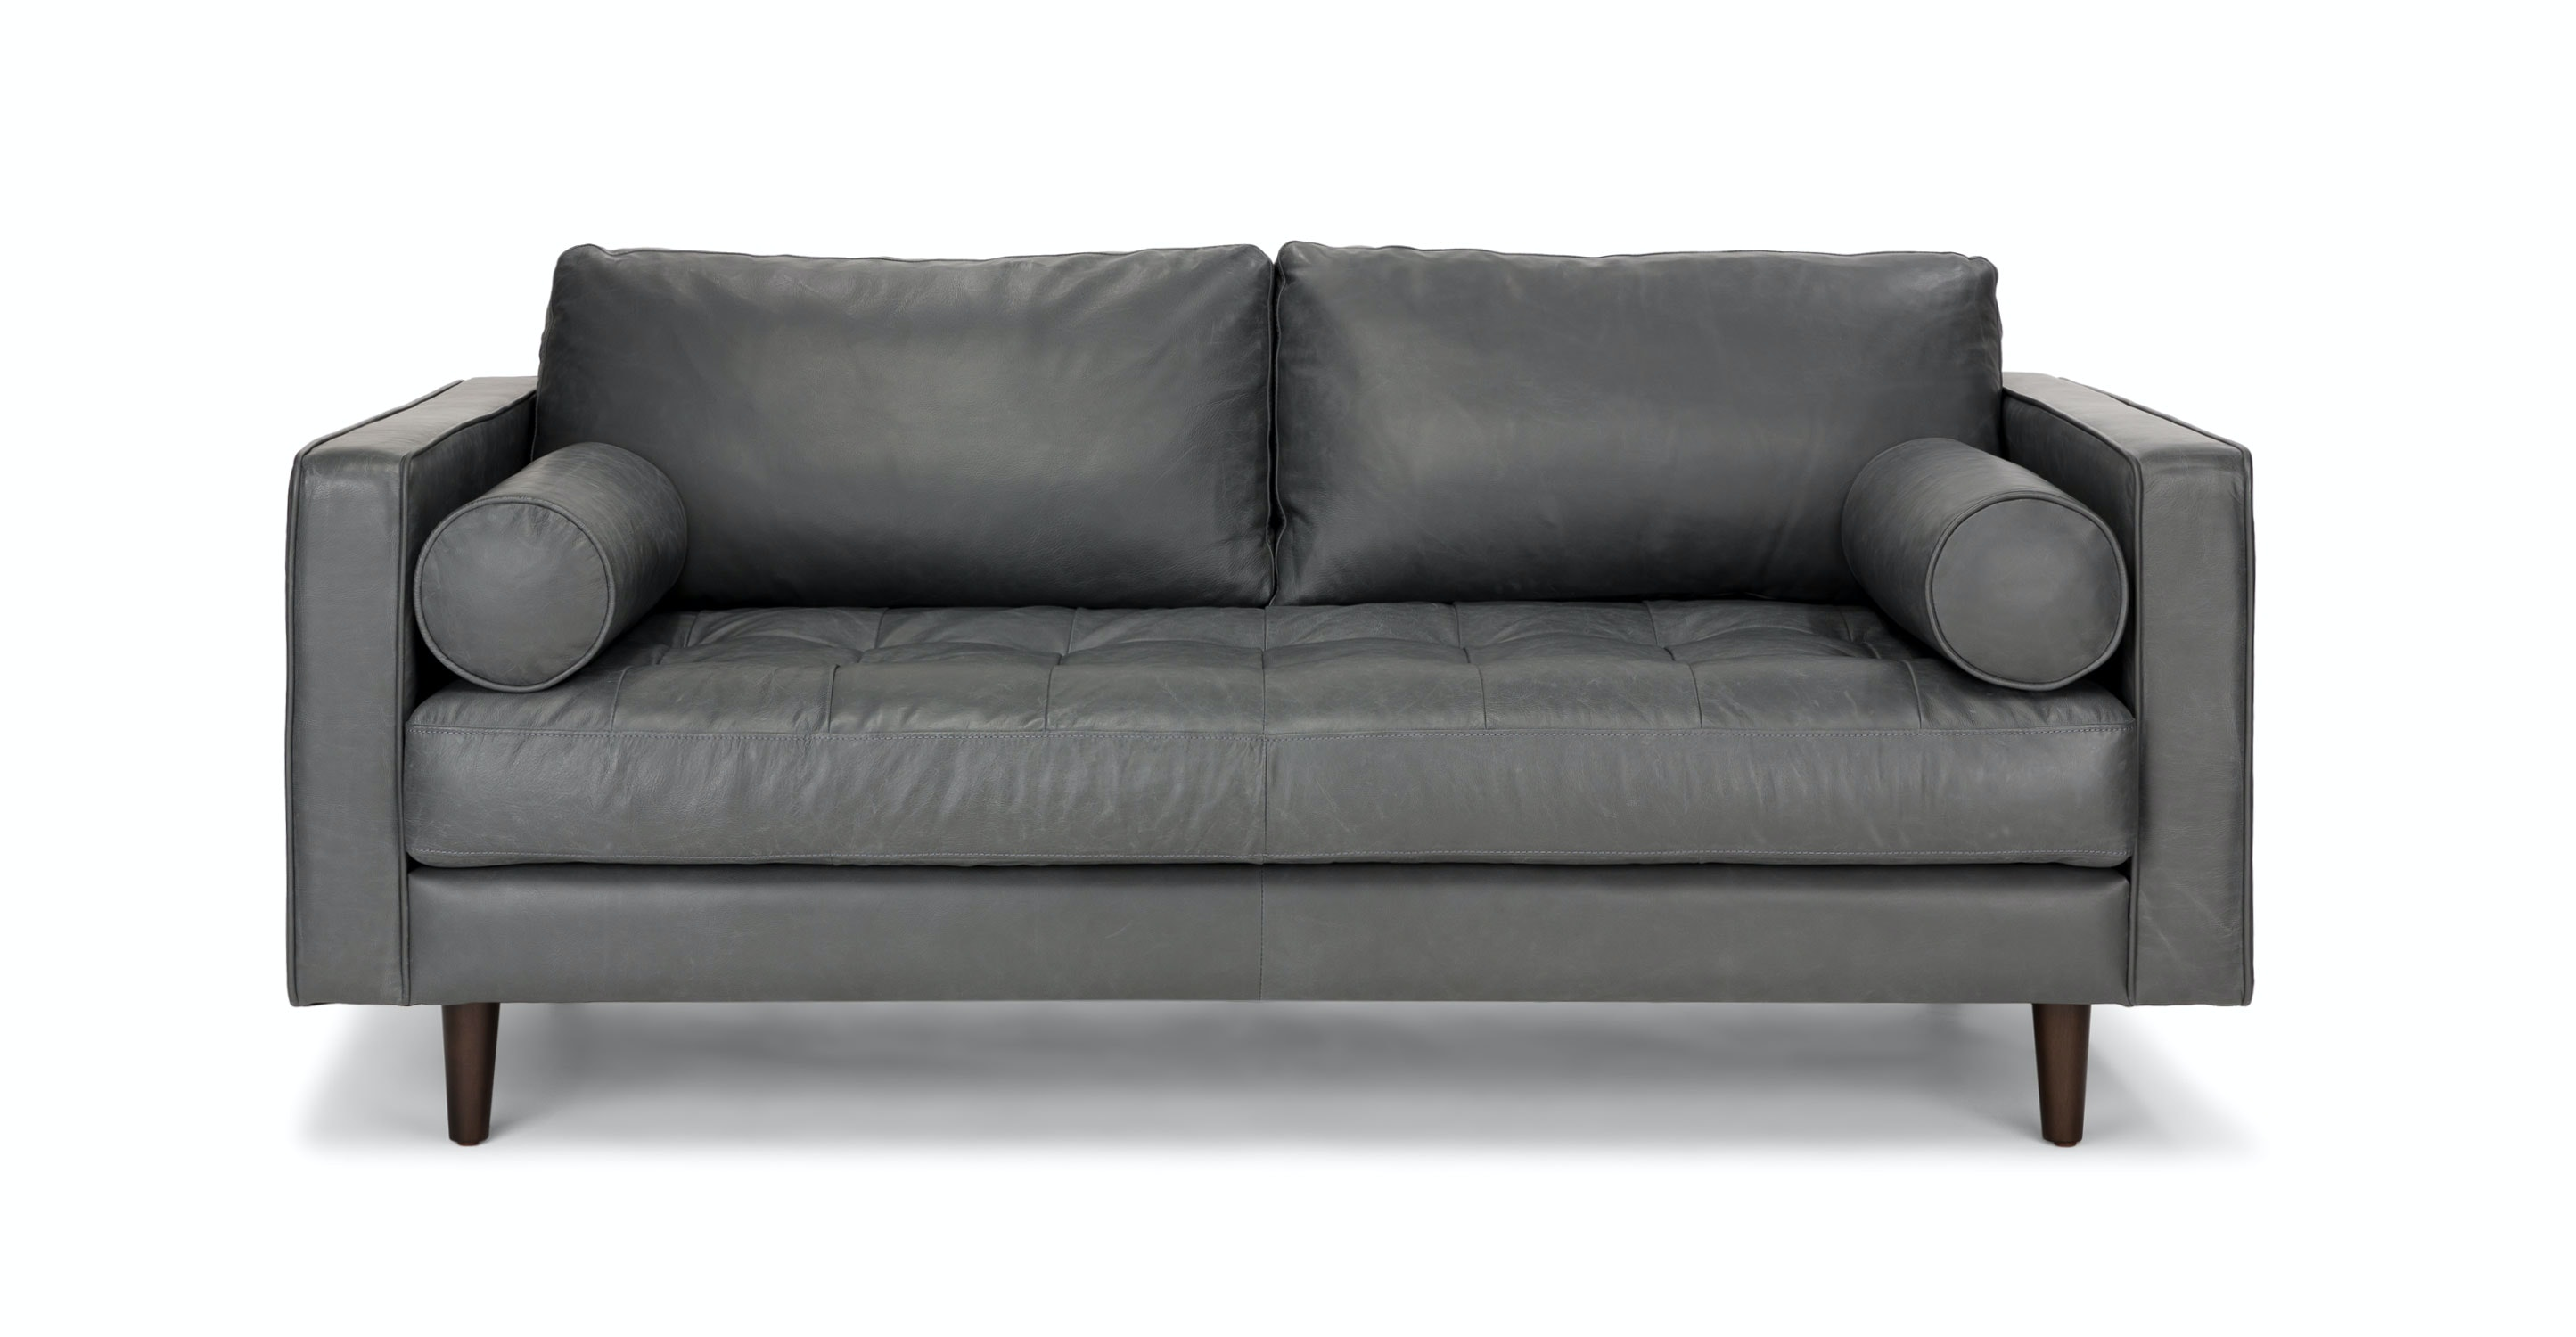 Gray Leather Tufted Sofa - Upholstered | Article Sven Modern Furniture